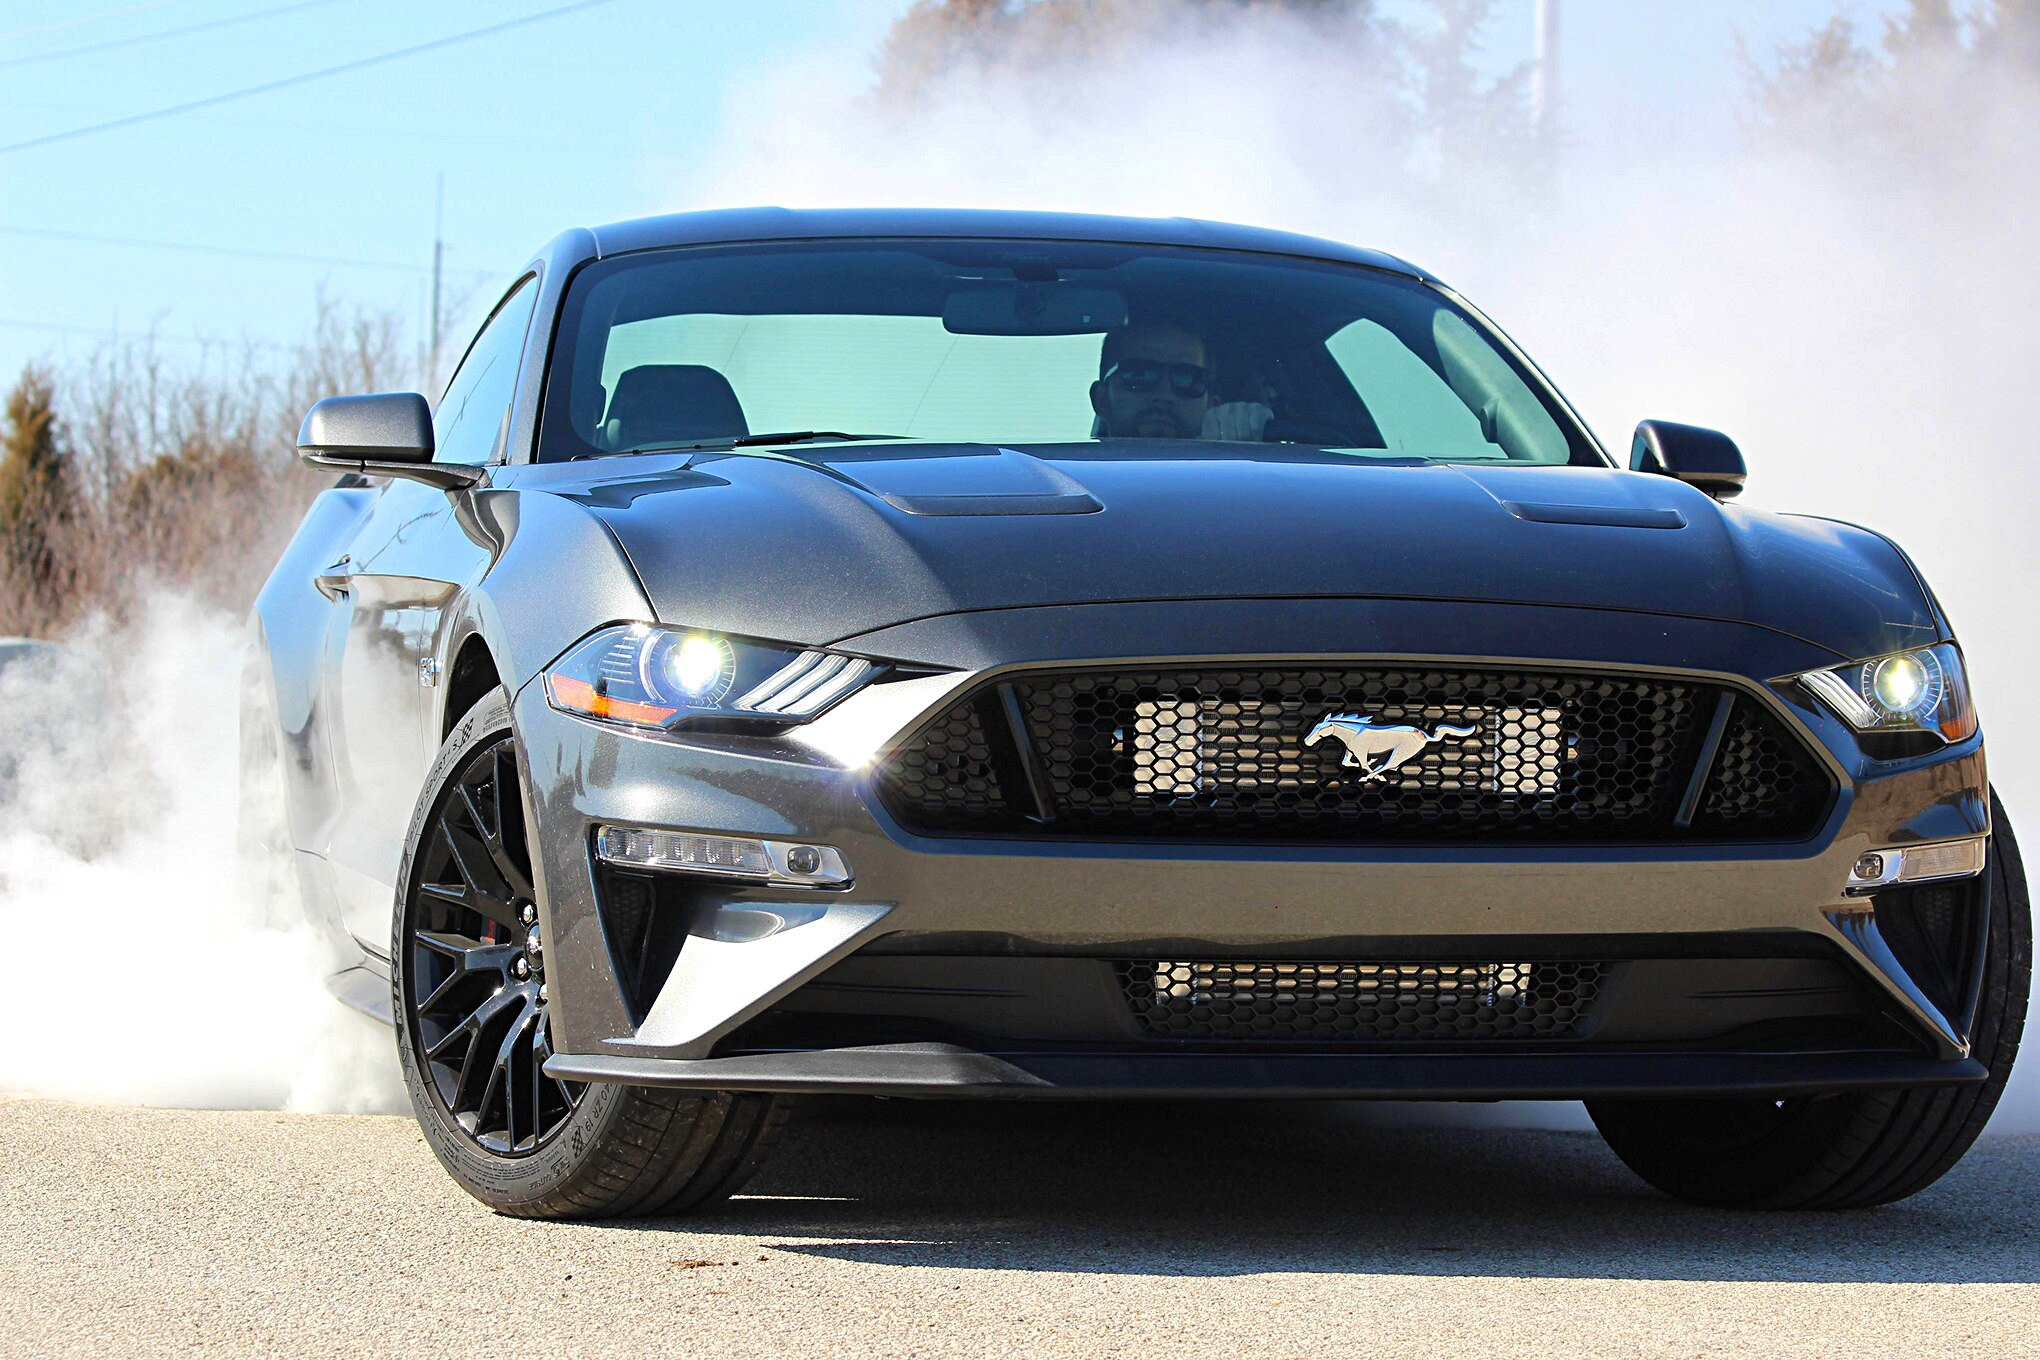 Procharger Adds 276 Wheel Horsepower To A 2018 Mustang